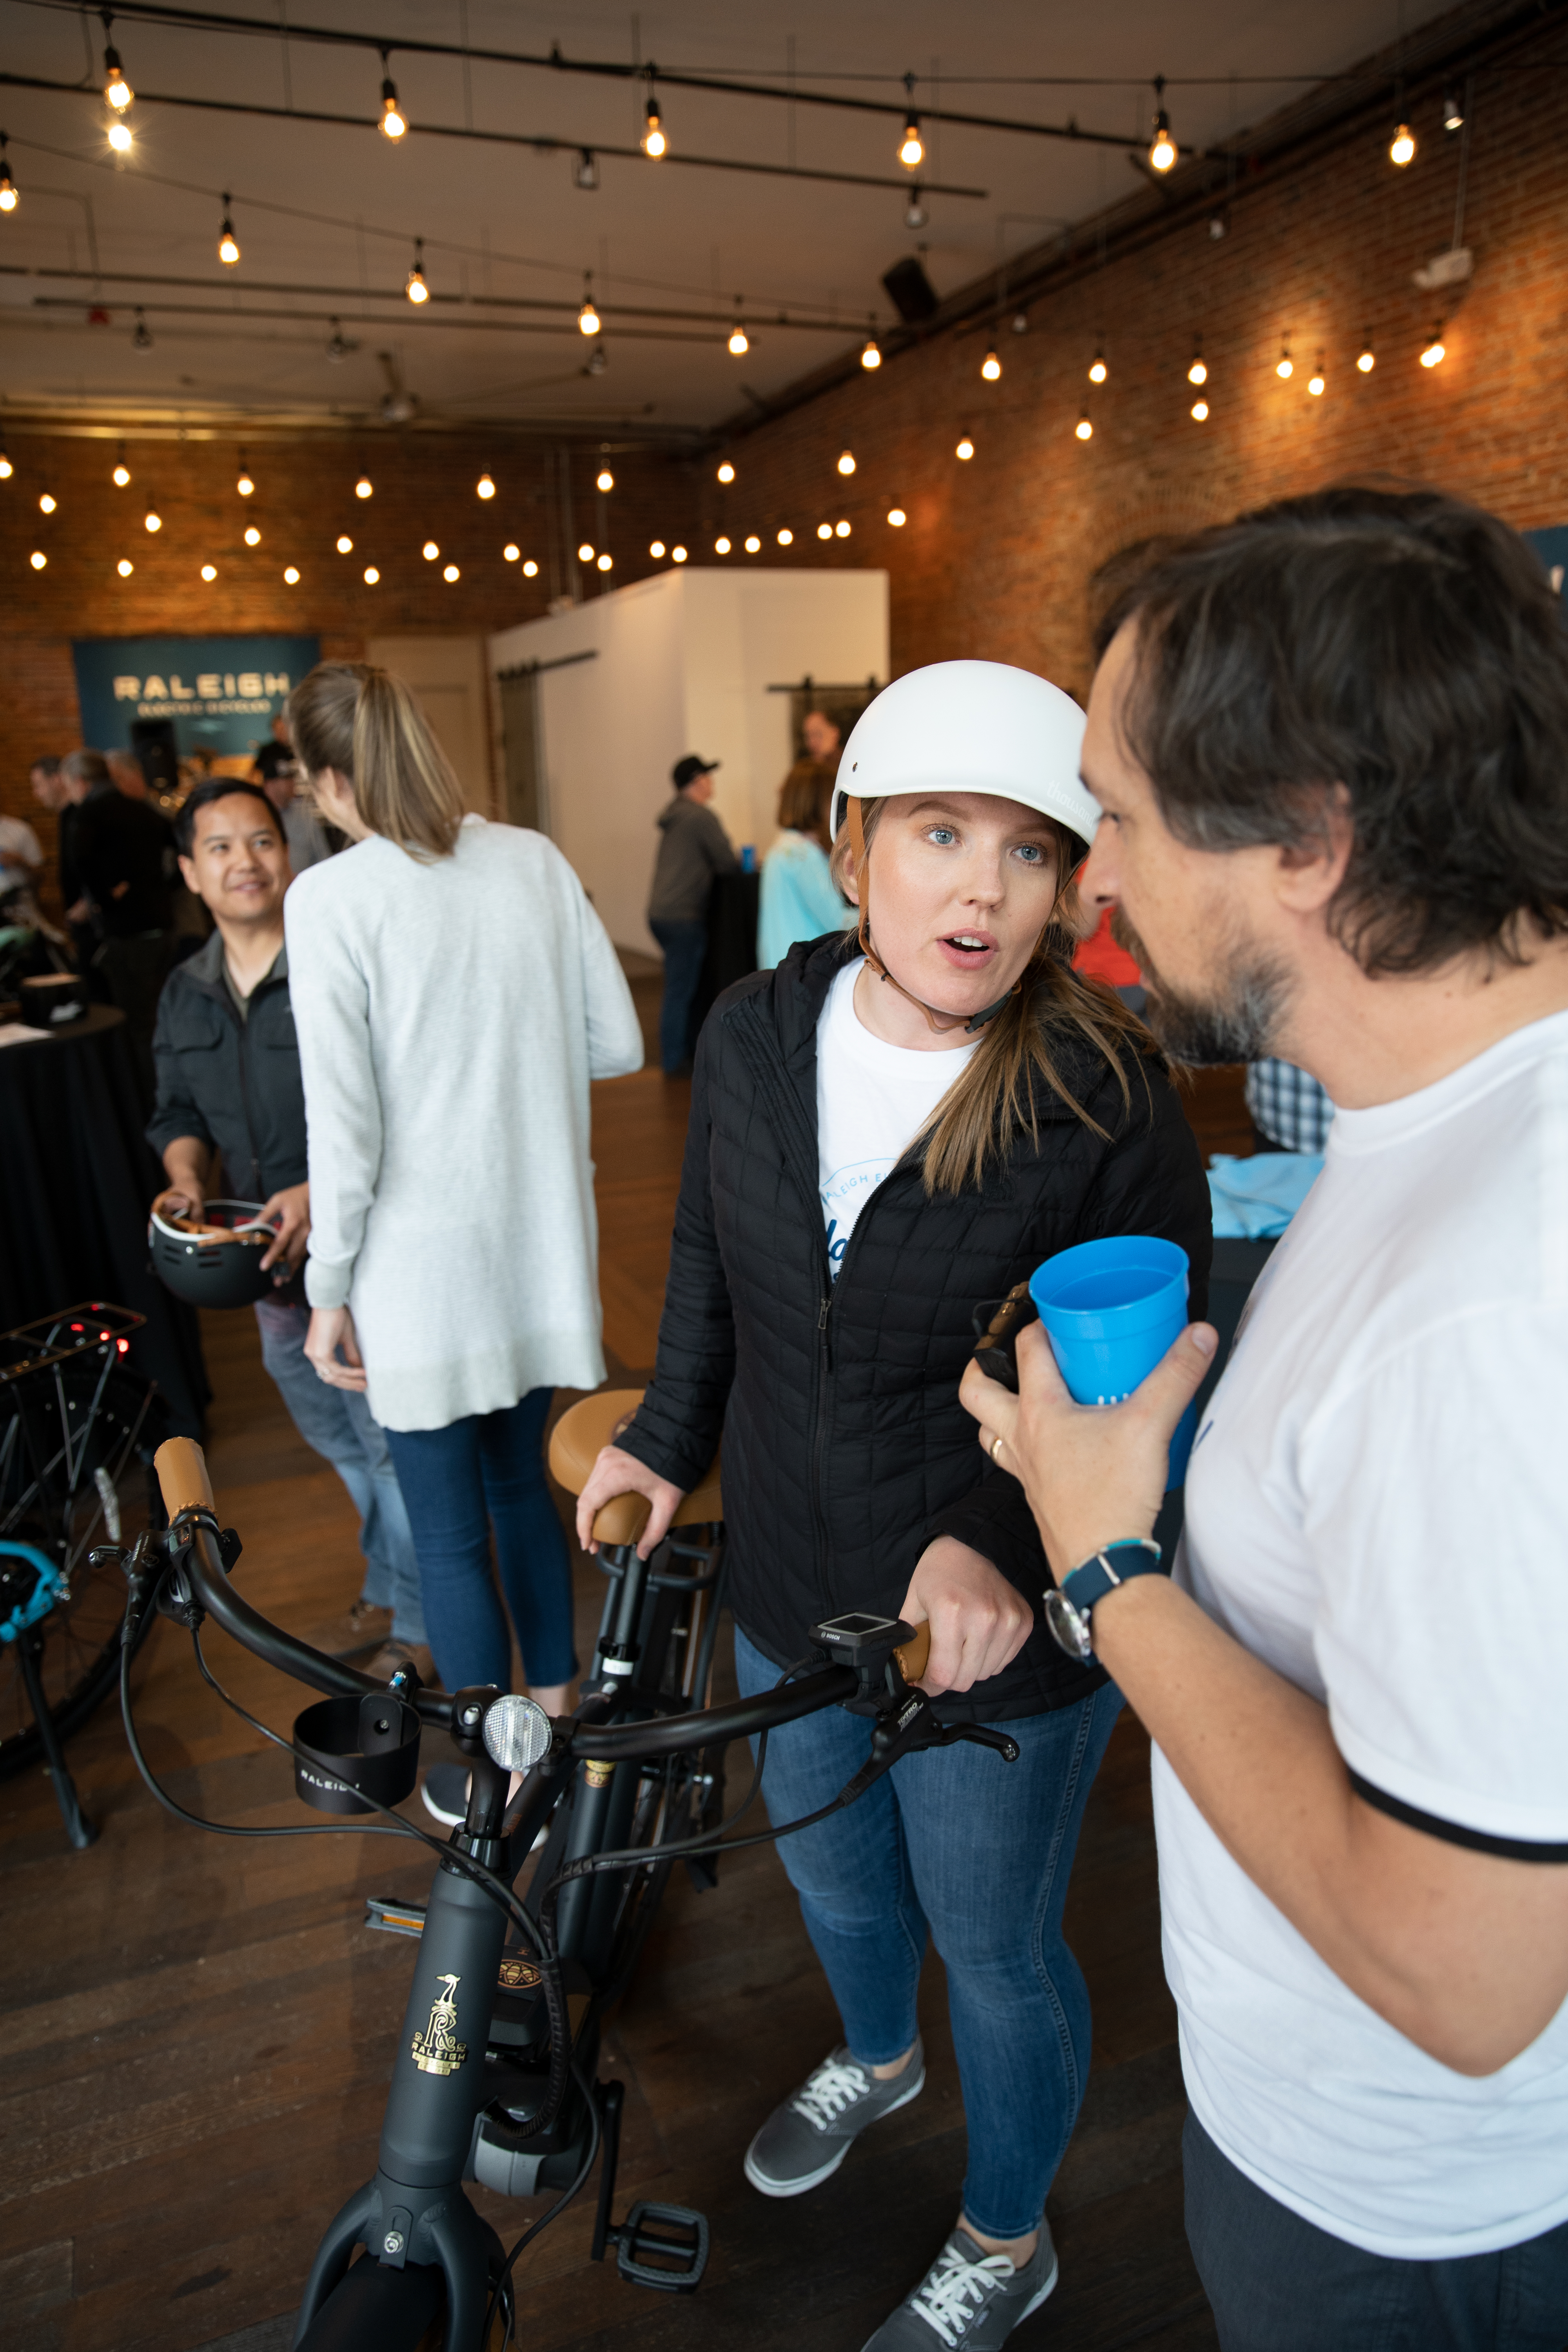 Woman in bike helmet standing next to bike and talking to man standing next to her.